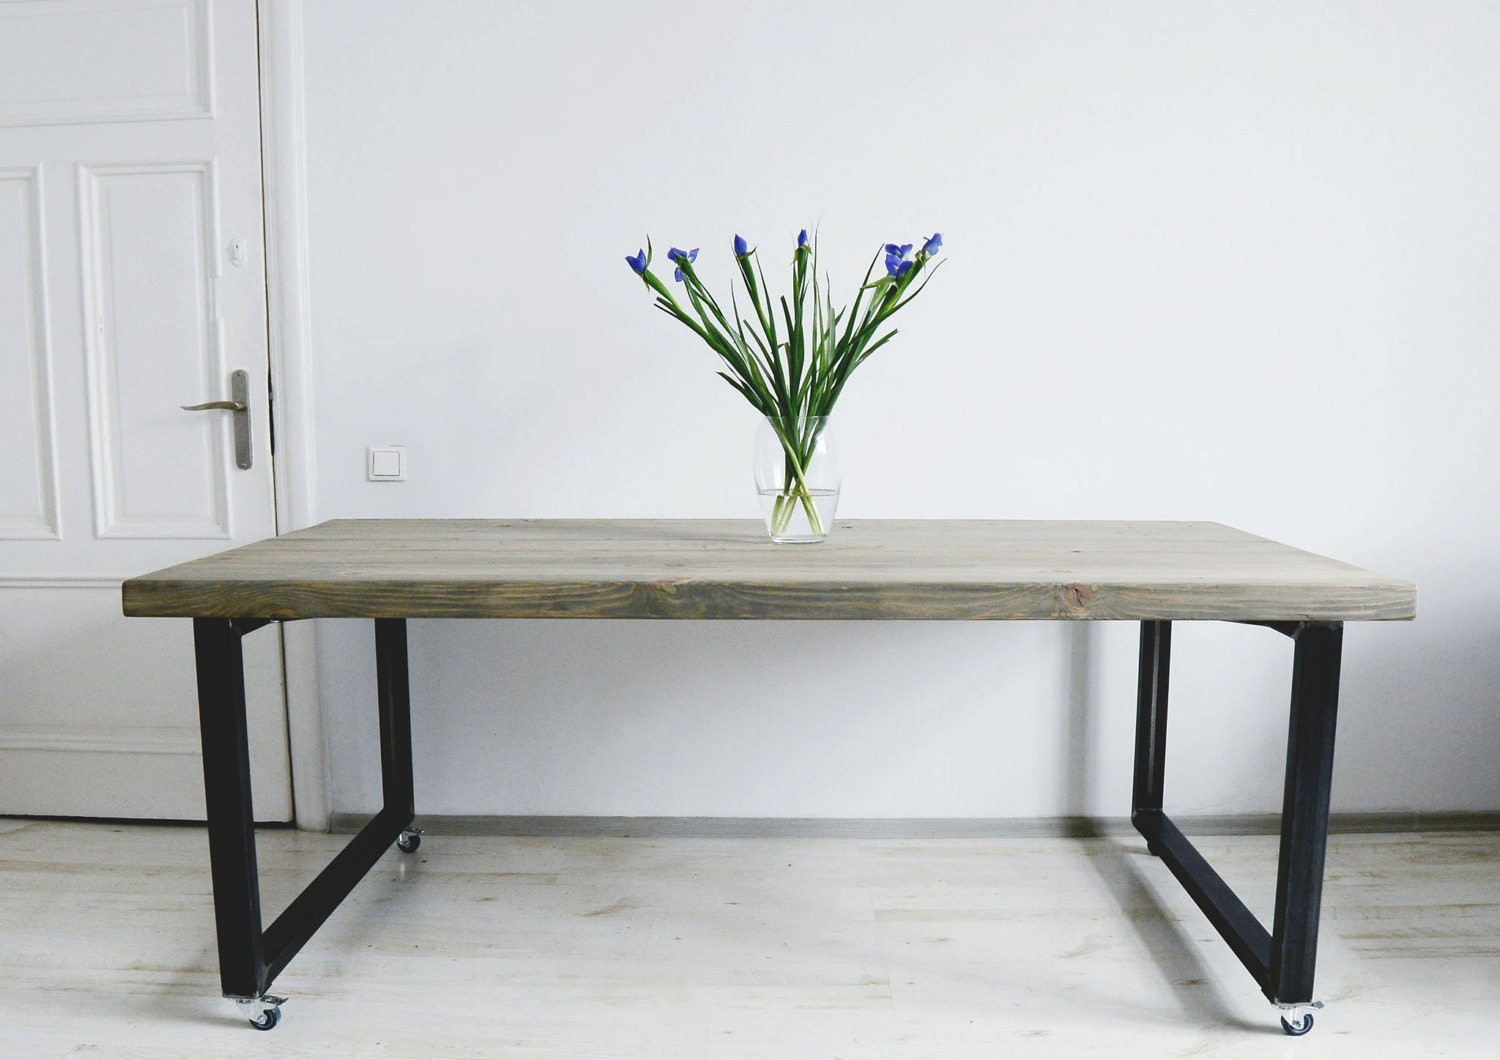 Superb img of Coffee Table On Wheels Wooden Table Metal Legs Industrial Etsy with #466138 color and 1500x1060 pixels